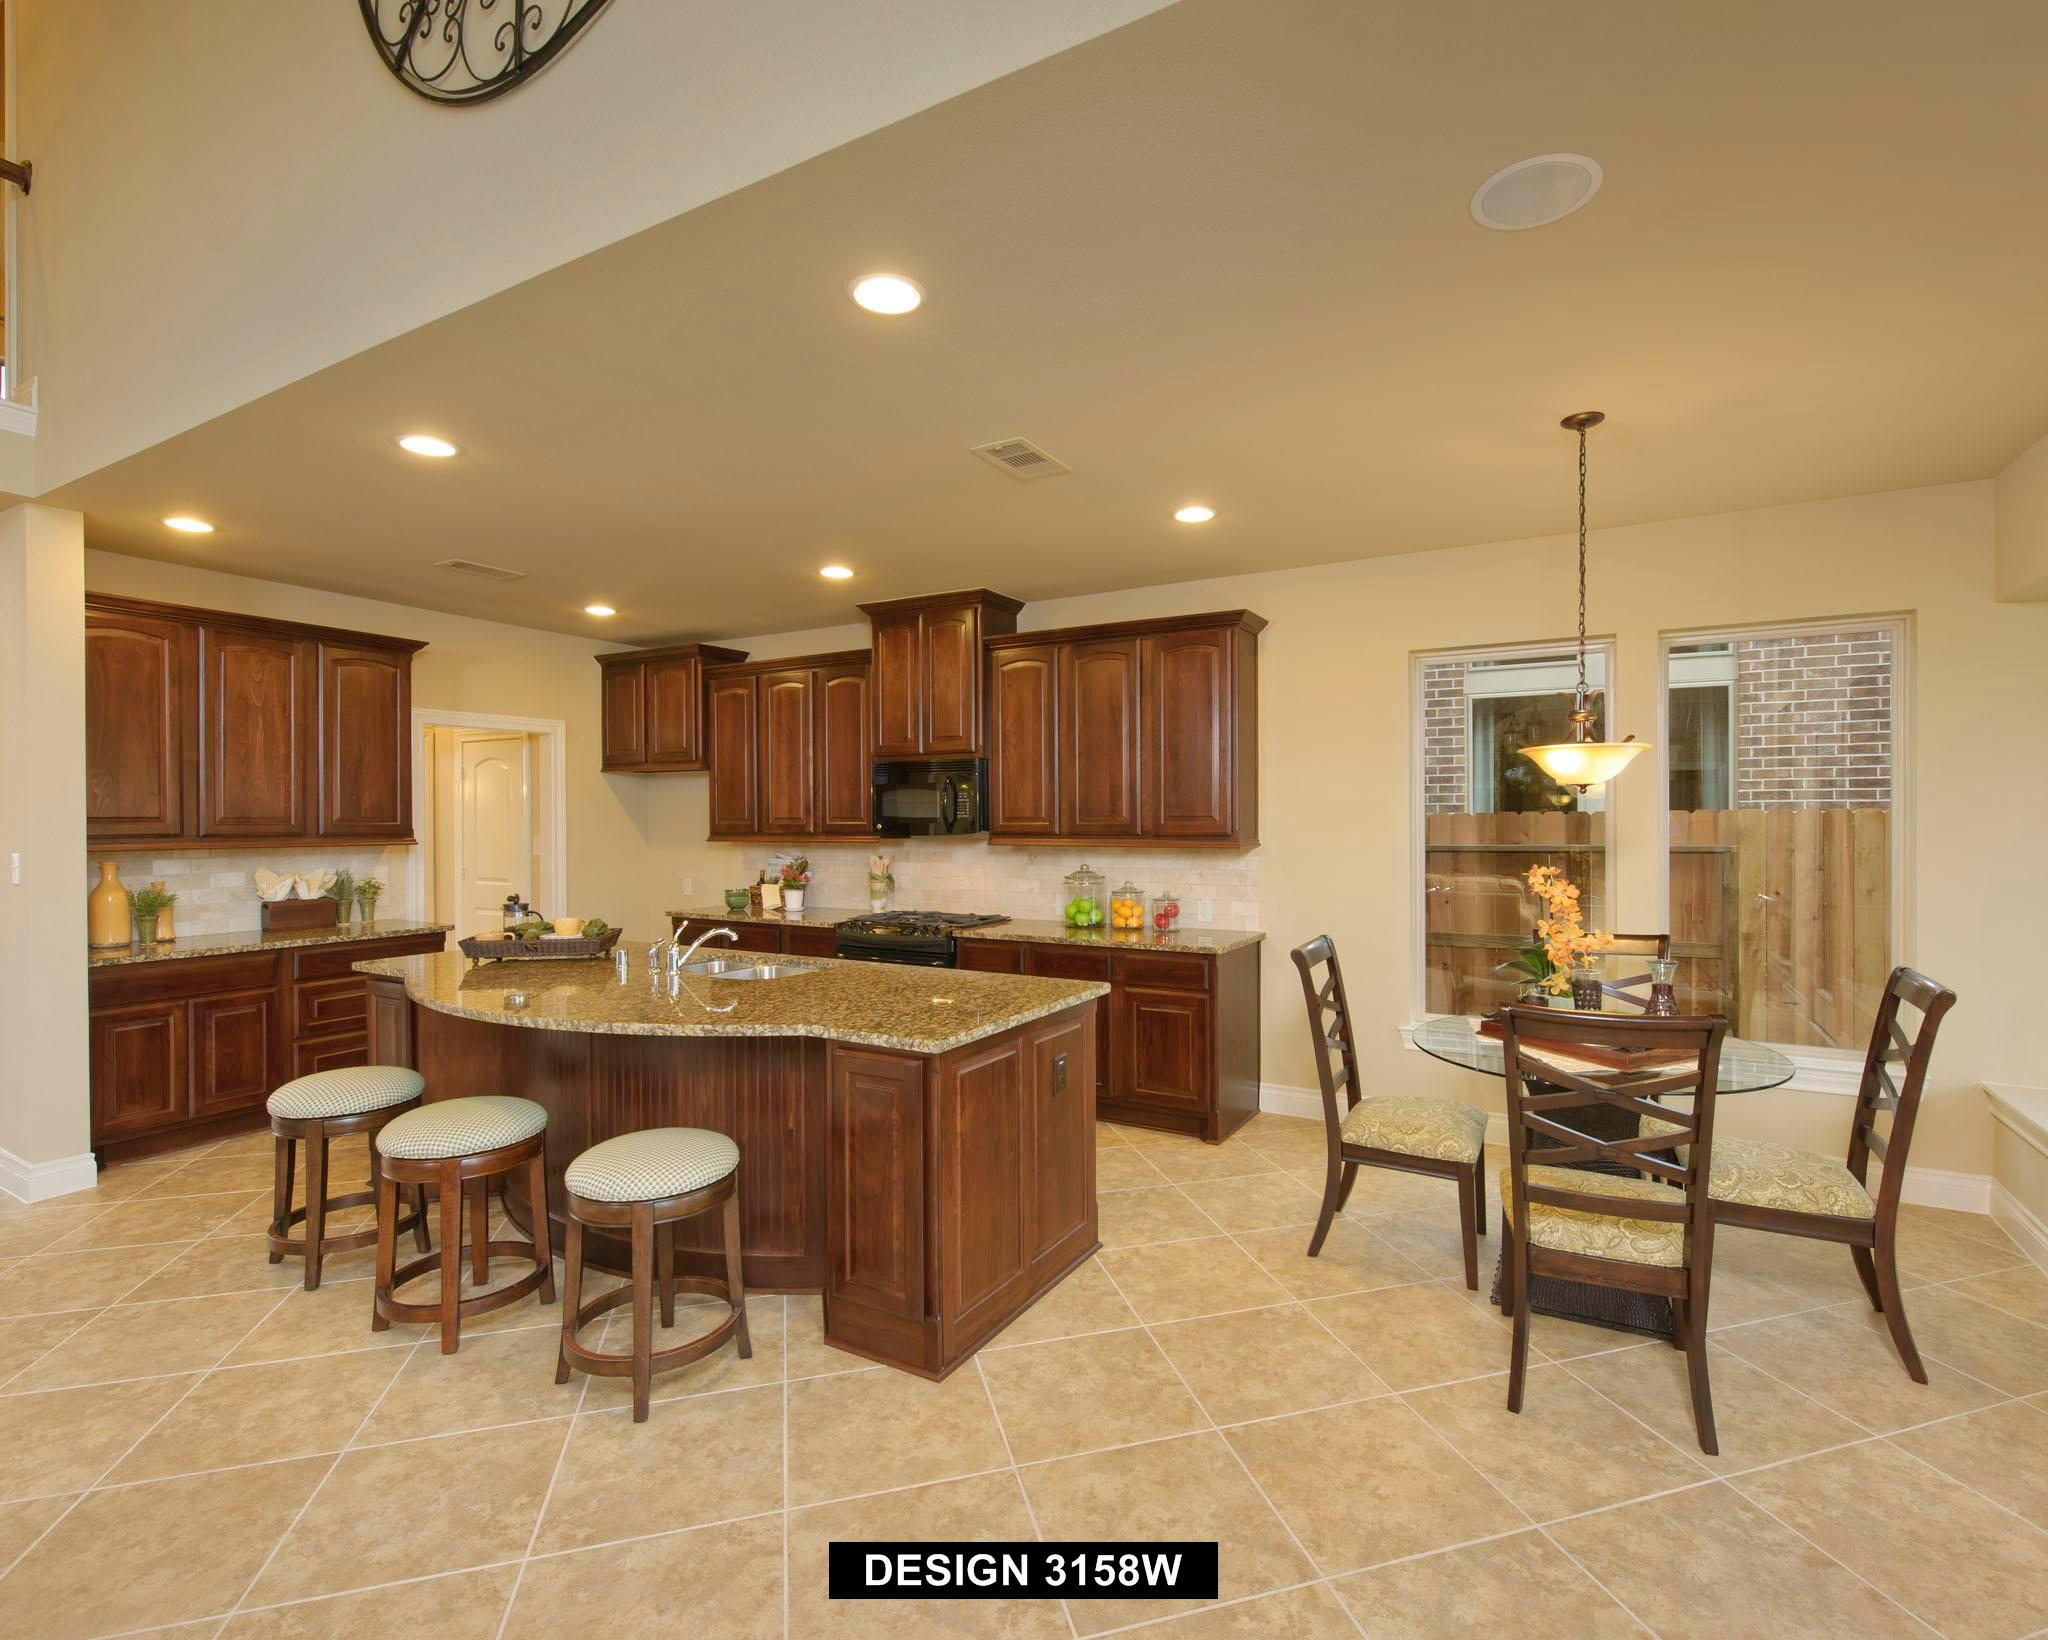 Kitchen featured in the 3158W By Perry Homes in Dallas, TX